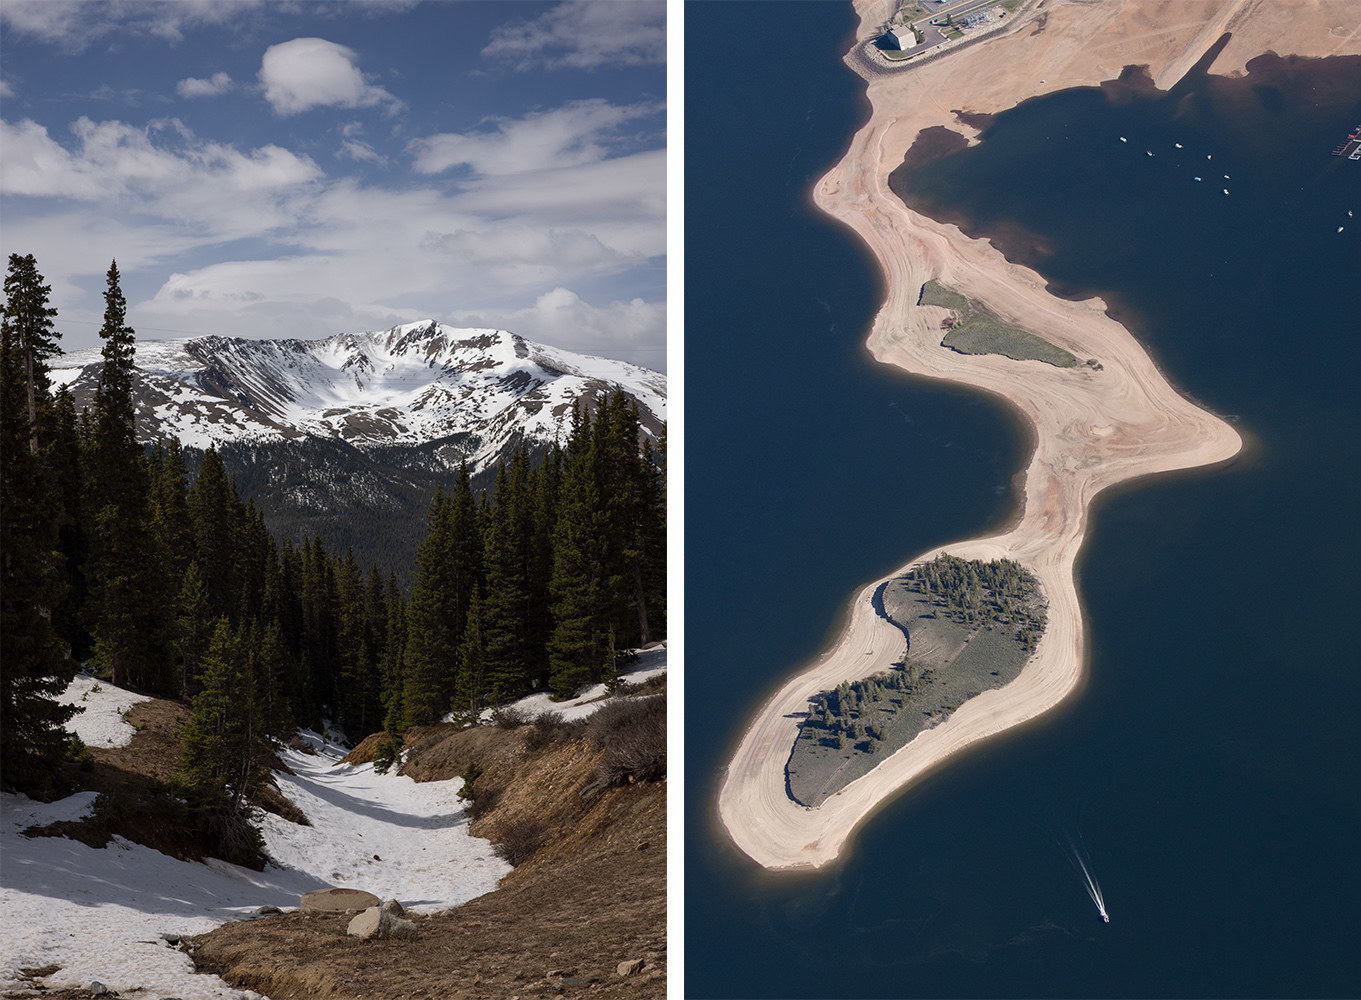 A snow-capped mountain and a half-empty lake seen from the sky in adjacent photos